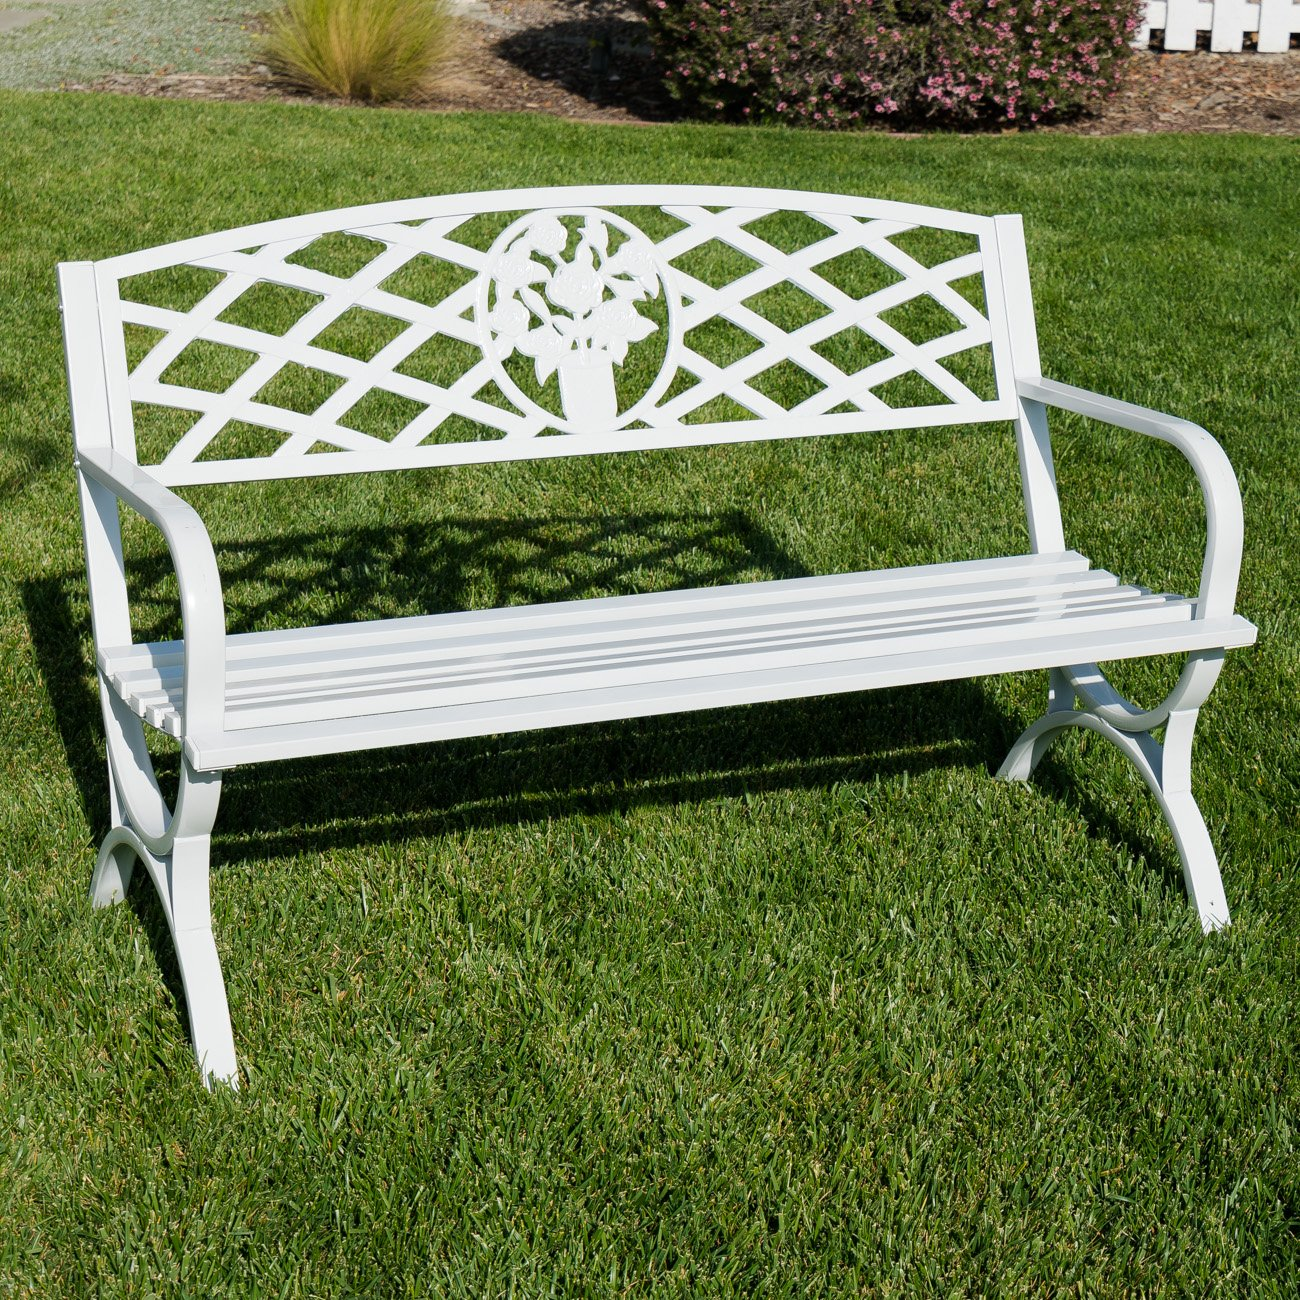 Belleze 50'' inch Outdoor Park Bench Garden Backyard Furniture Chair Porch Seat Steel Frame, White by Belleze (Image #1)